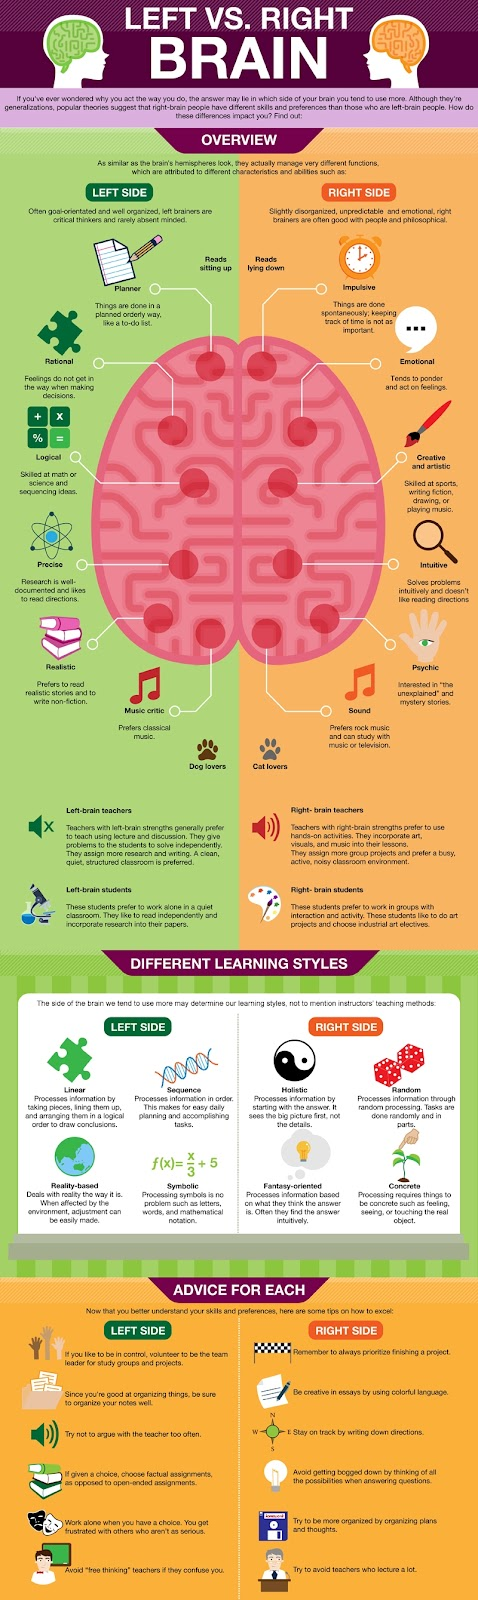 left and right brain methods New approaches in time management are focusing on the right or intuitive side of  the brain explores the differences between the left and right brain.